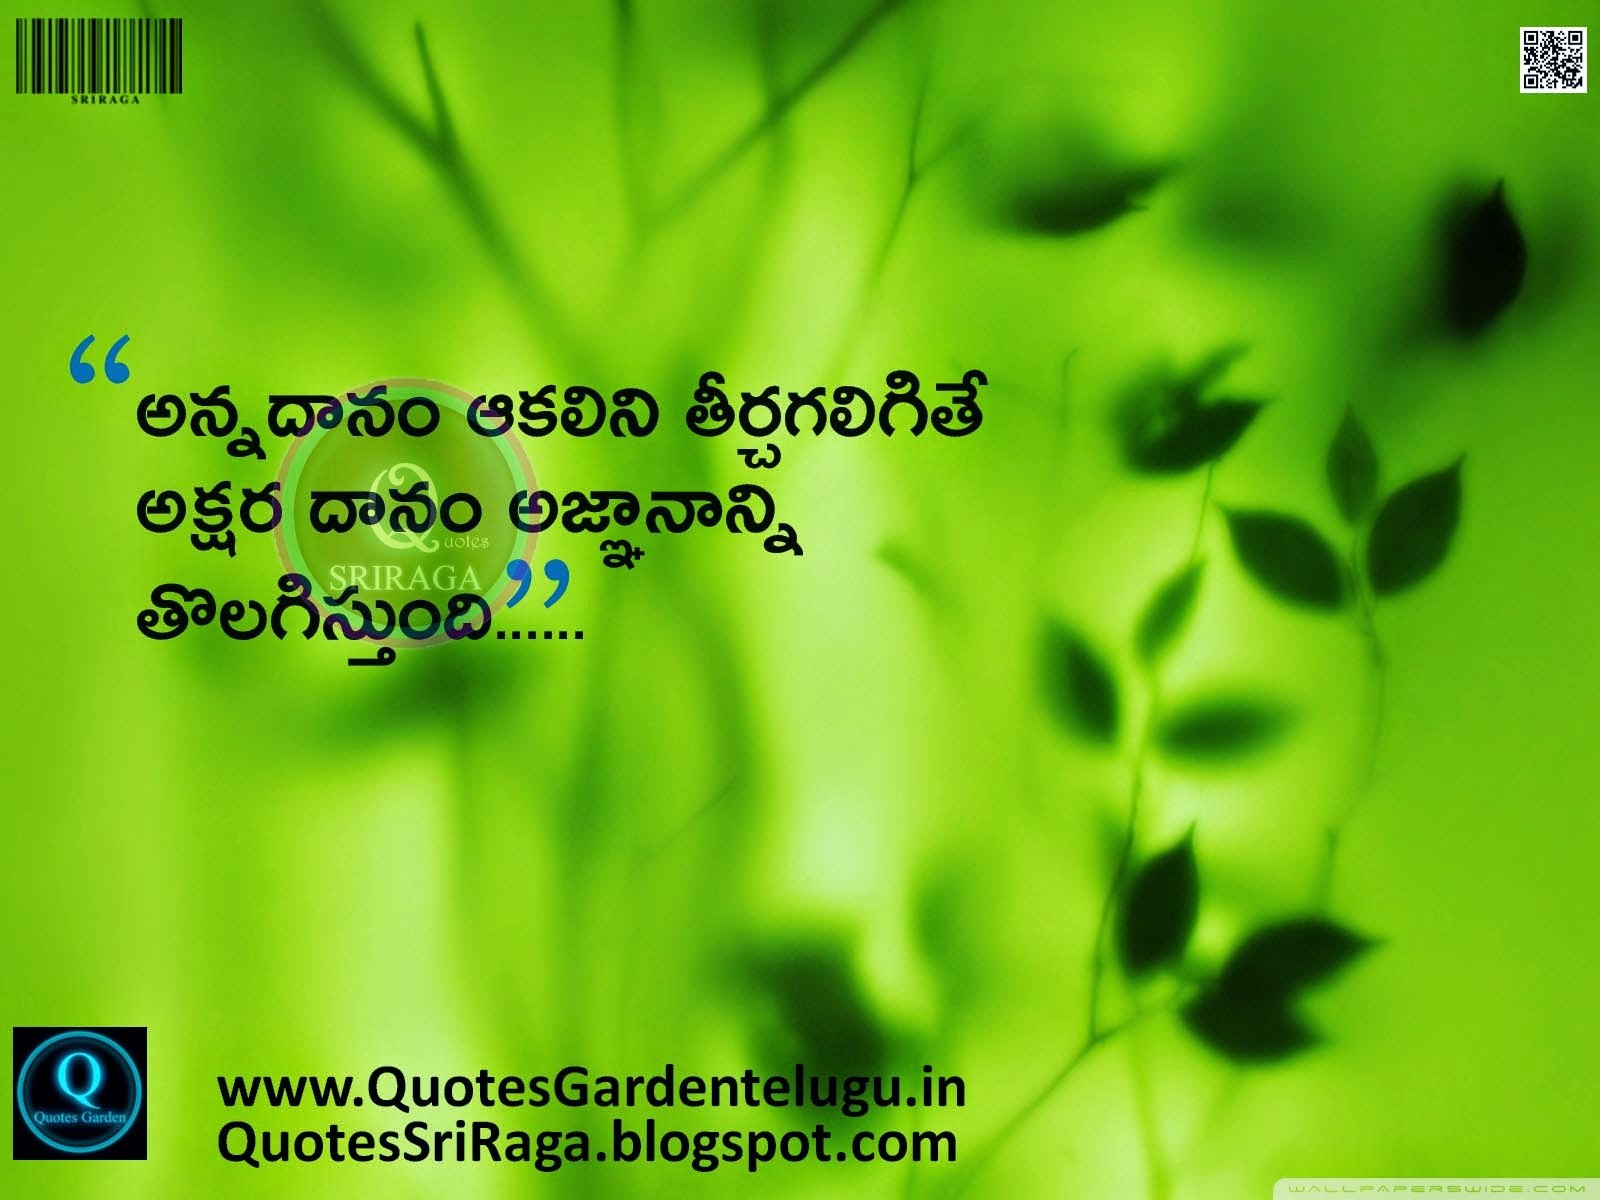 BestTelugu Educational inspirational Quotes images